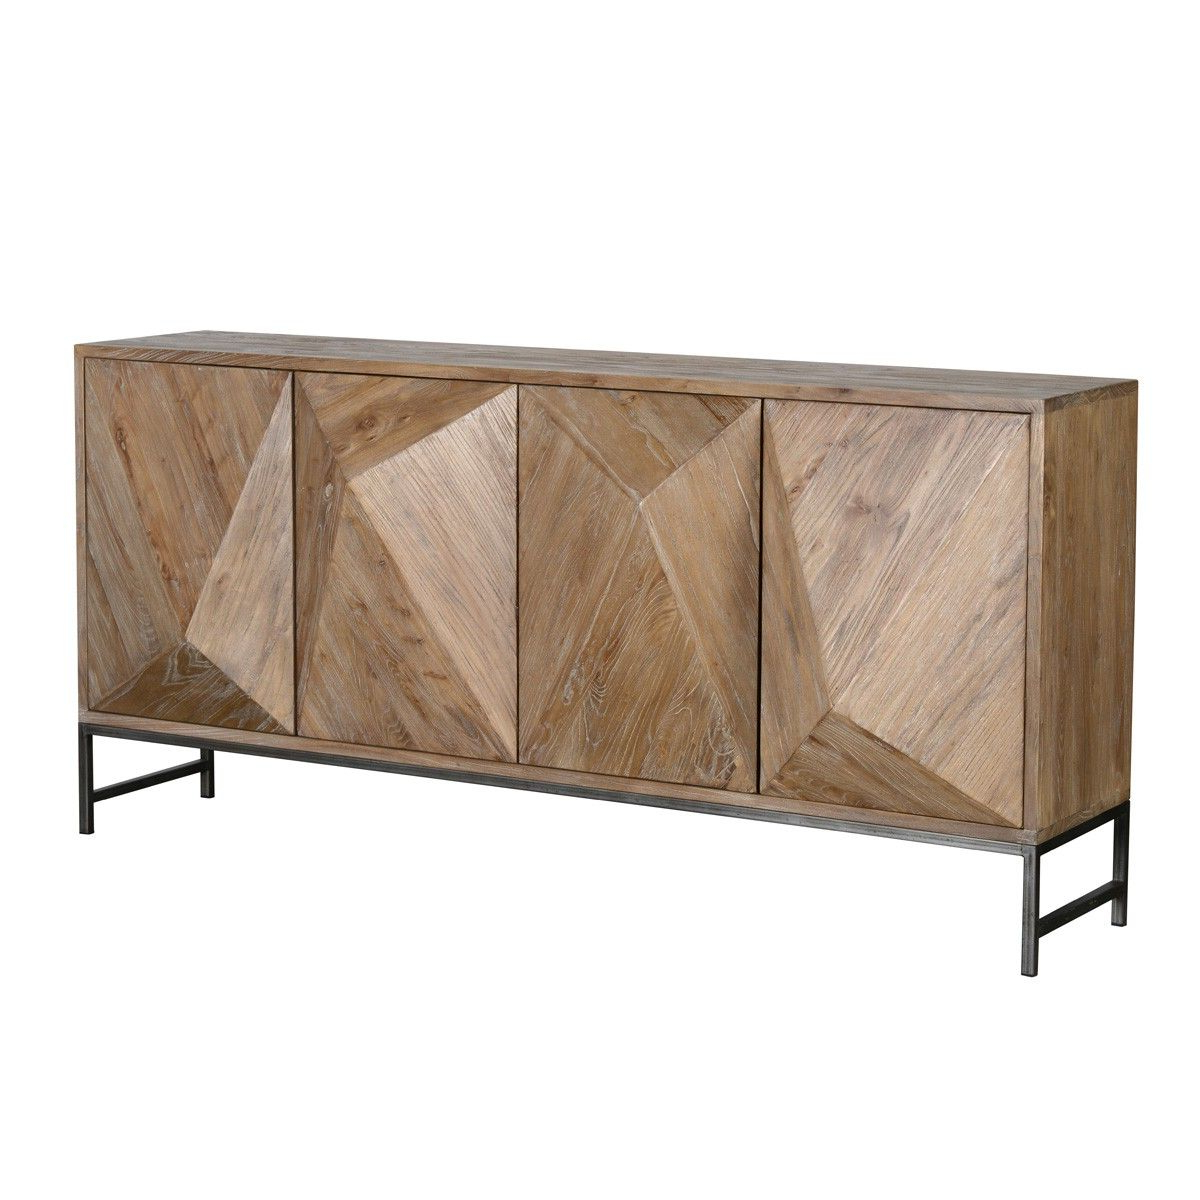 Latest Maddock 4Dr Sideboard – Cabinets – Furniture – Products With Regard To Rosson Sideboards (Gallery 8 of 20)